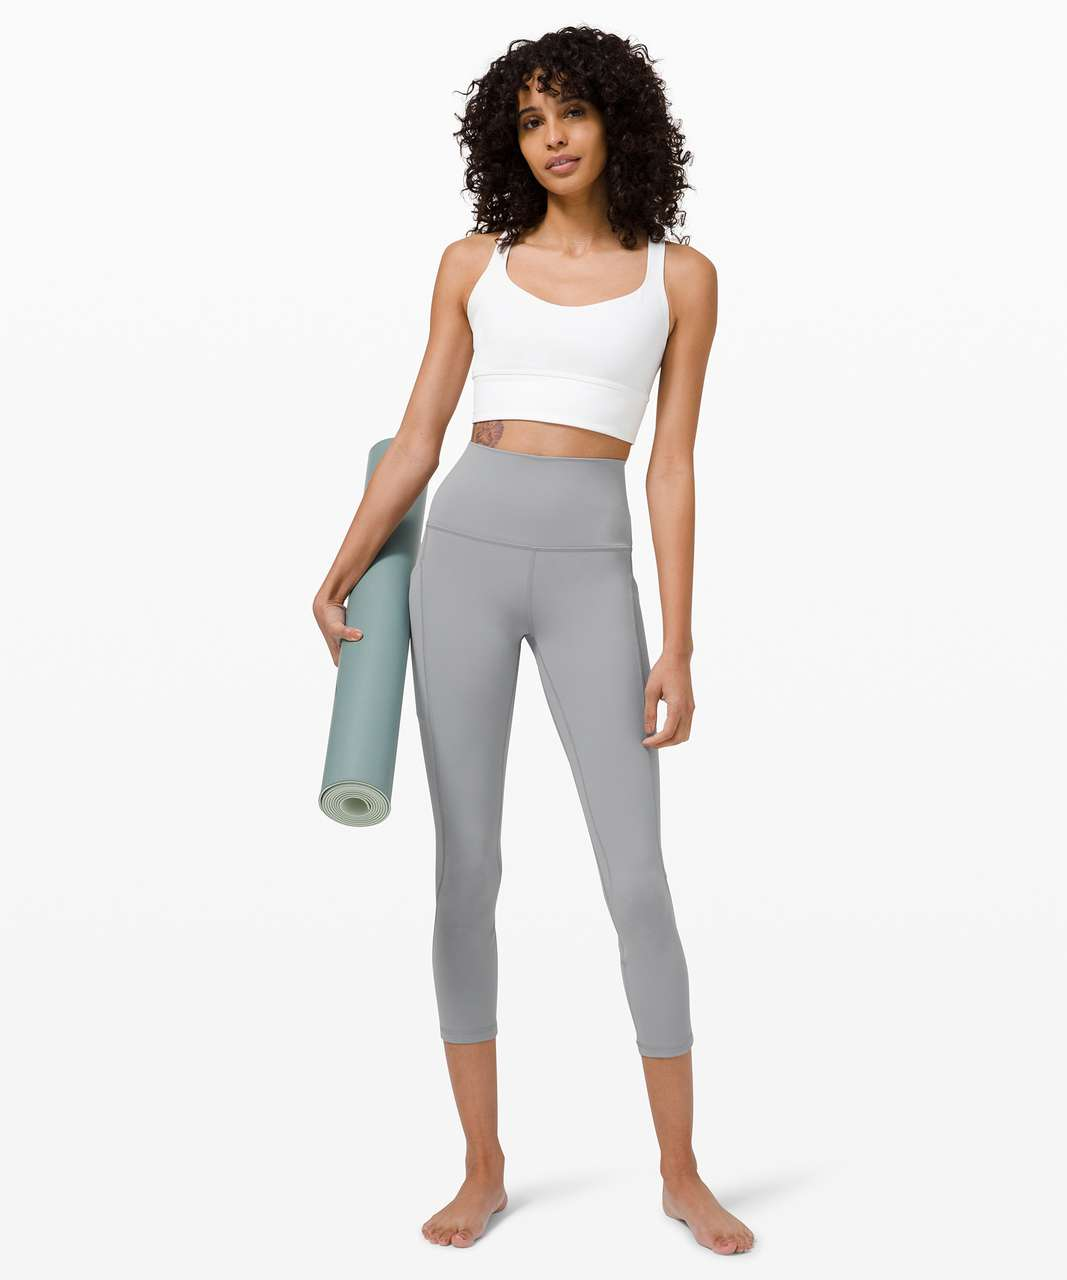 "Lululemon Align High Rise Crop with Pockets 23"" - Rhino Grey"